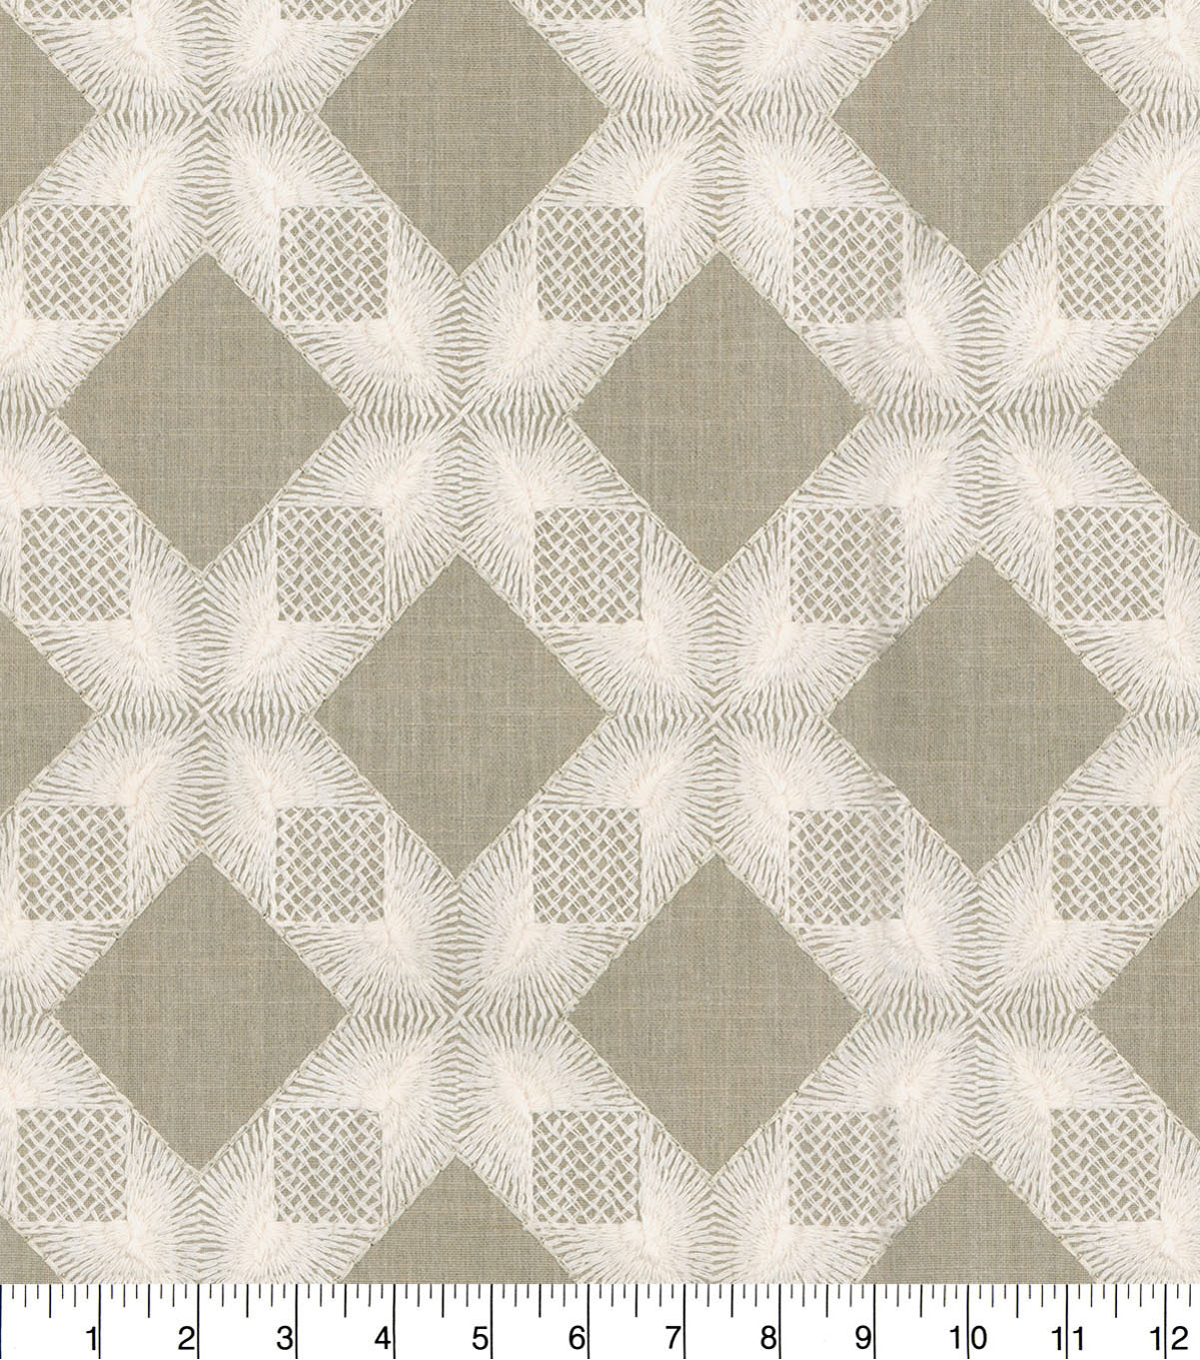 Waverly Upholstery Fabric 9\u0022x9\u0022 Swatch-Linear Lace Embroidered Flax